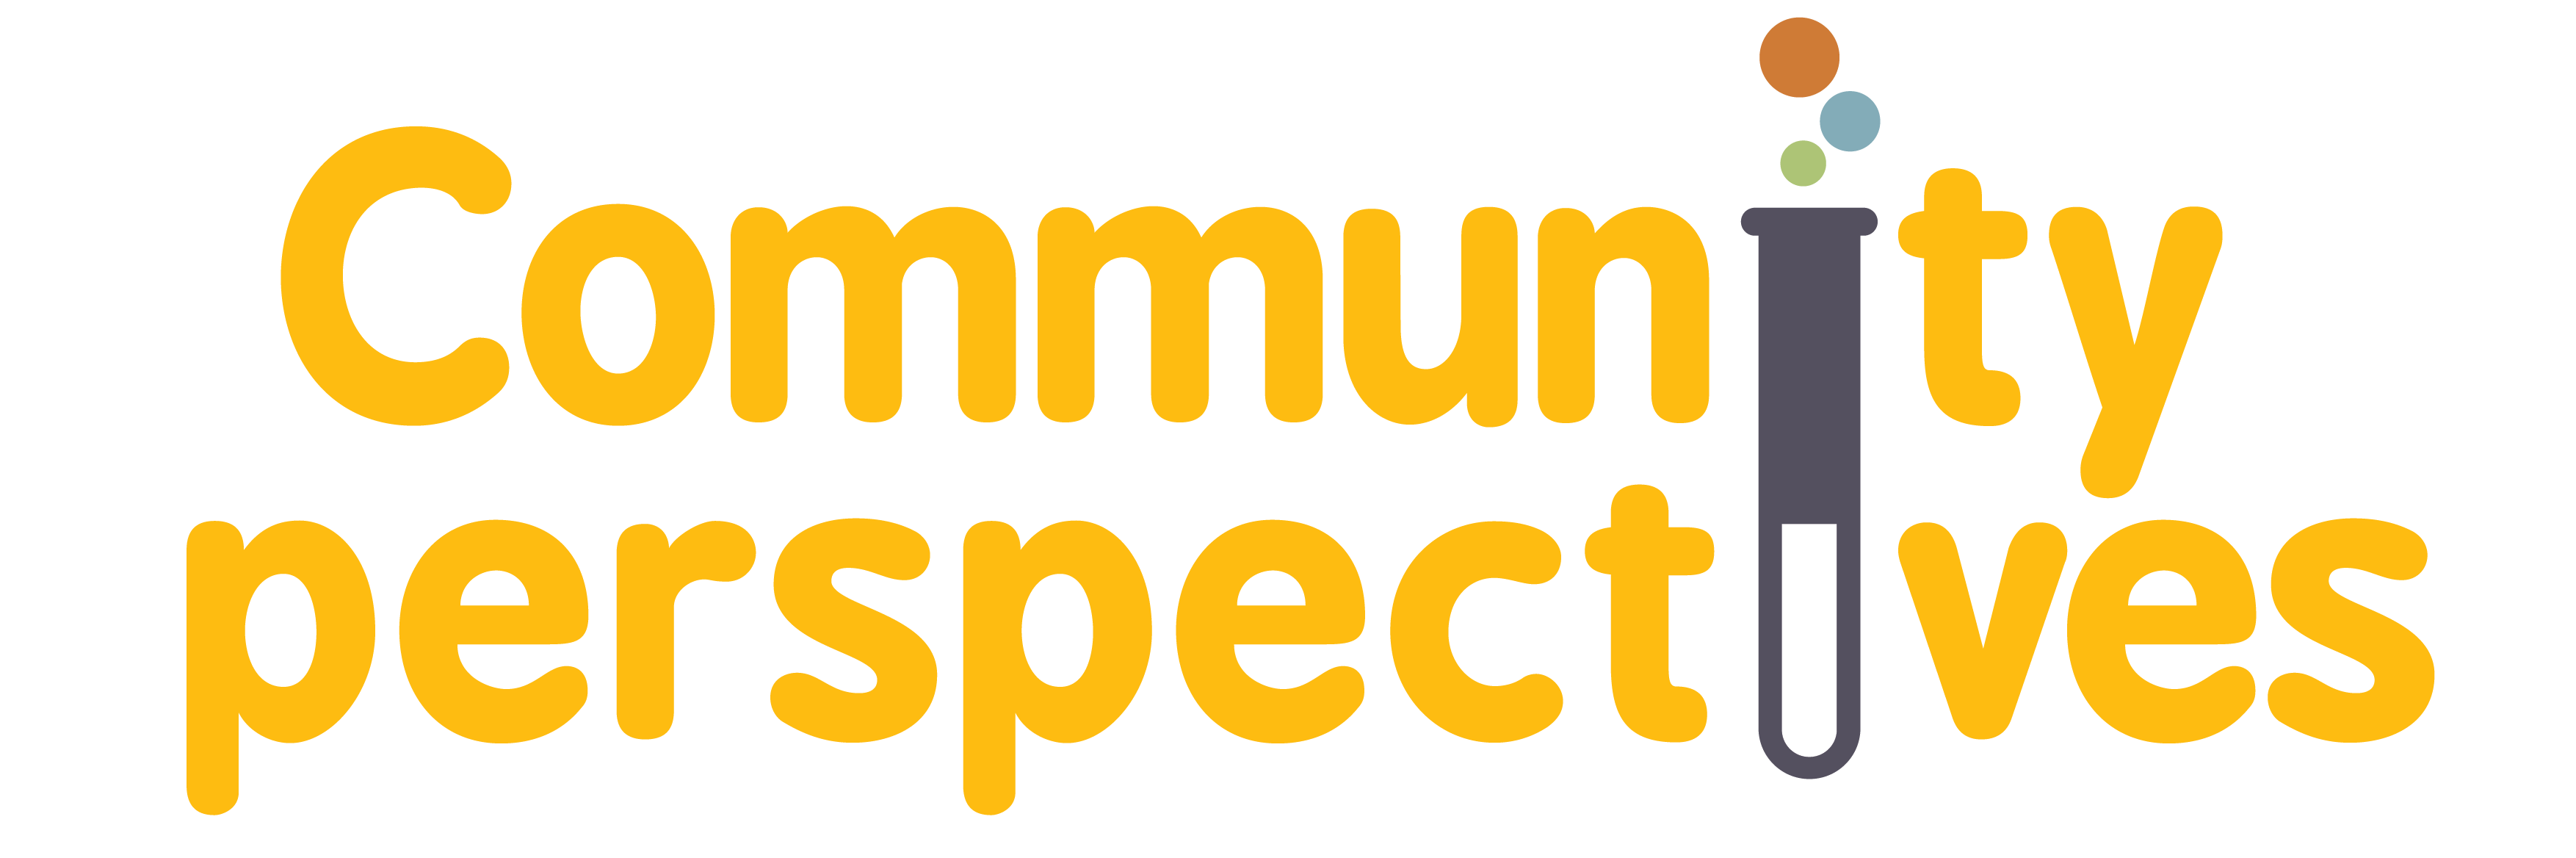 Community Perspectives Logo